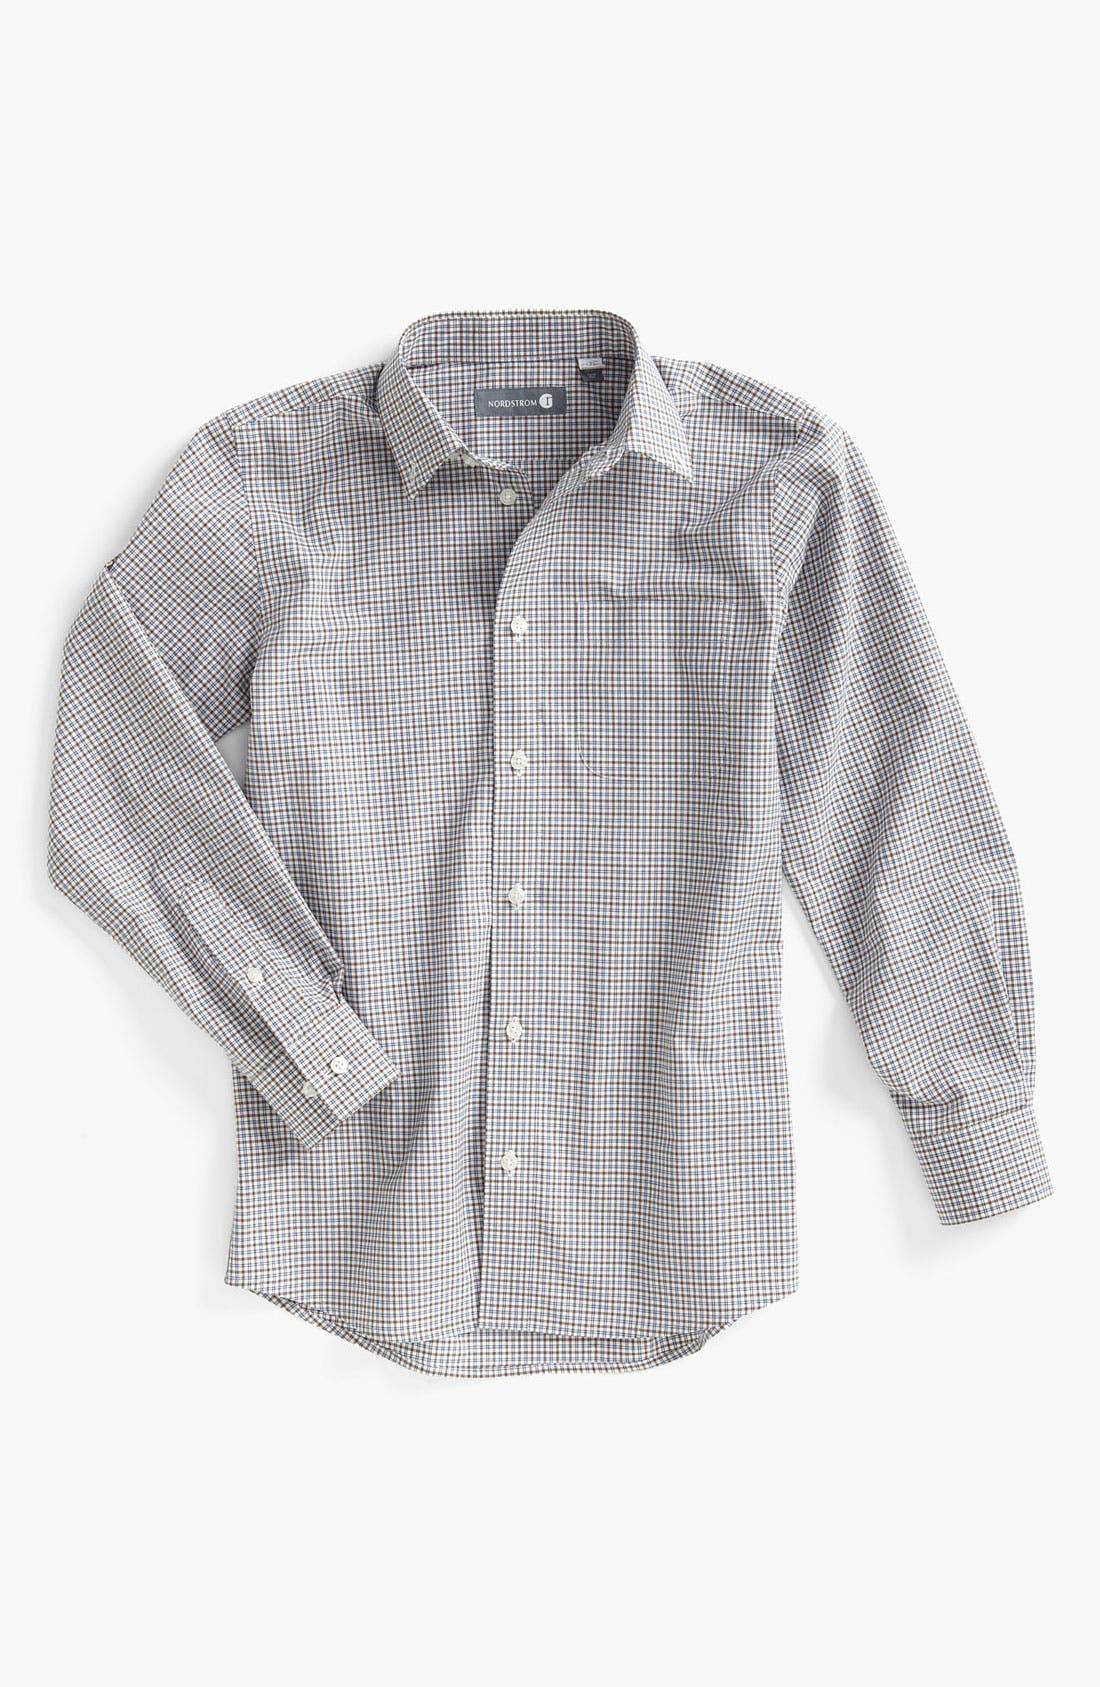 Main Image - Nordstrom Gingham Dress Shirt (Little Boys)